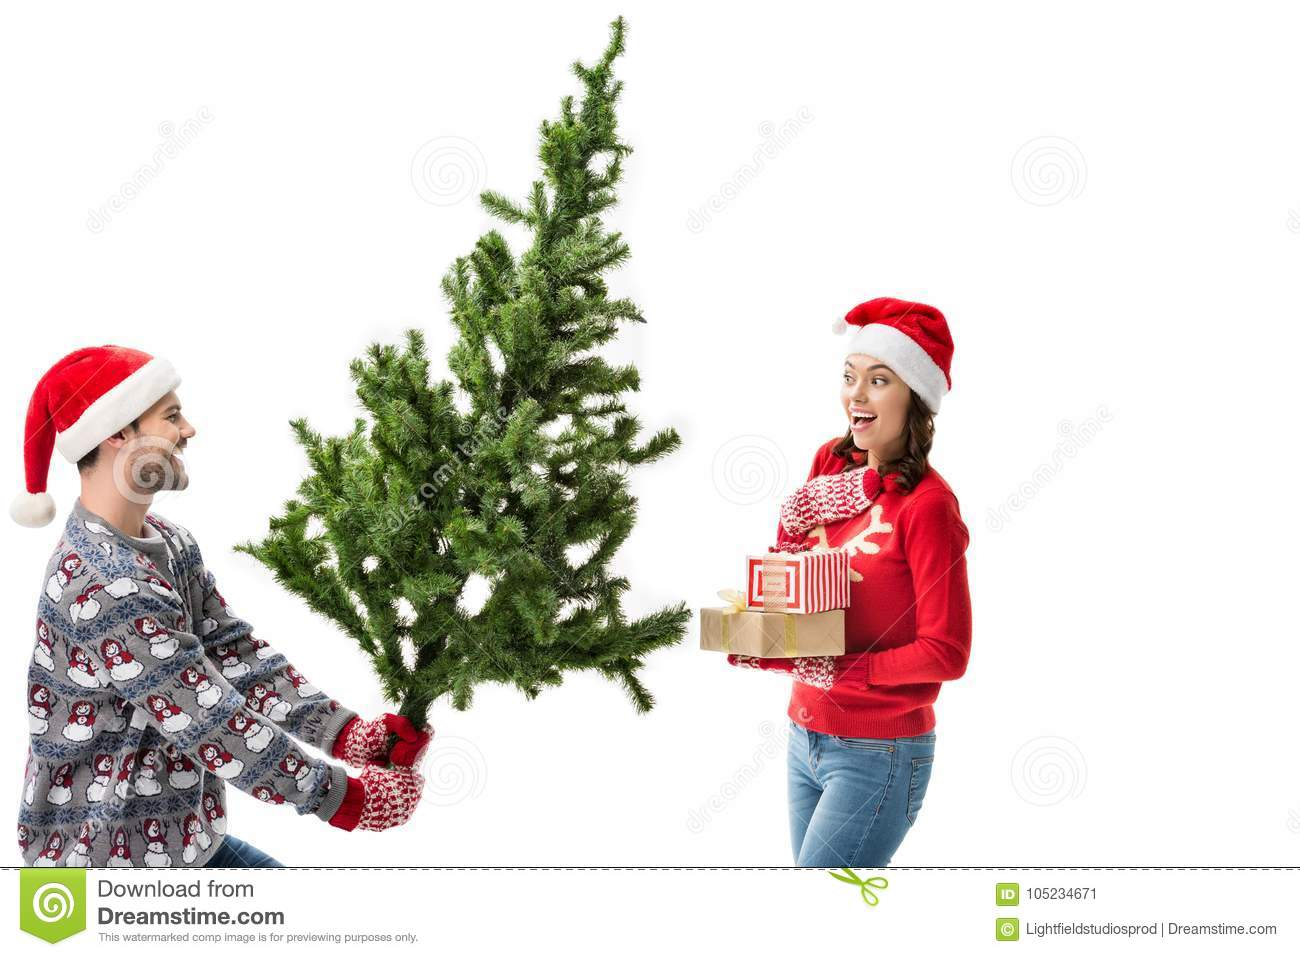 Man Showing Christmas Tree To Girlfriend Stock Image - Image of ...